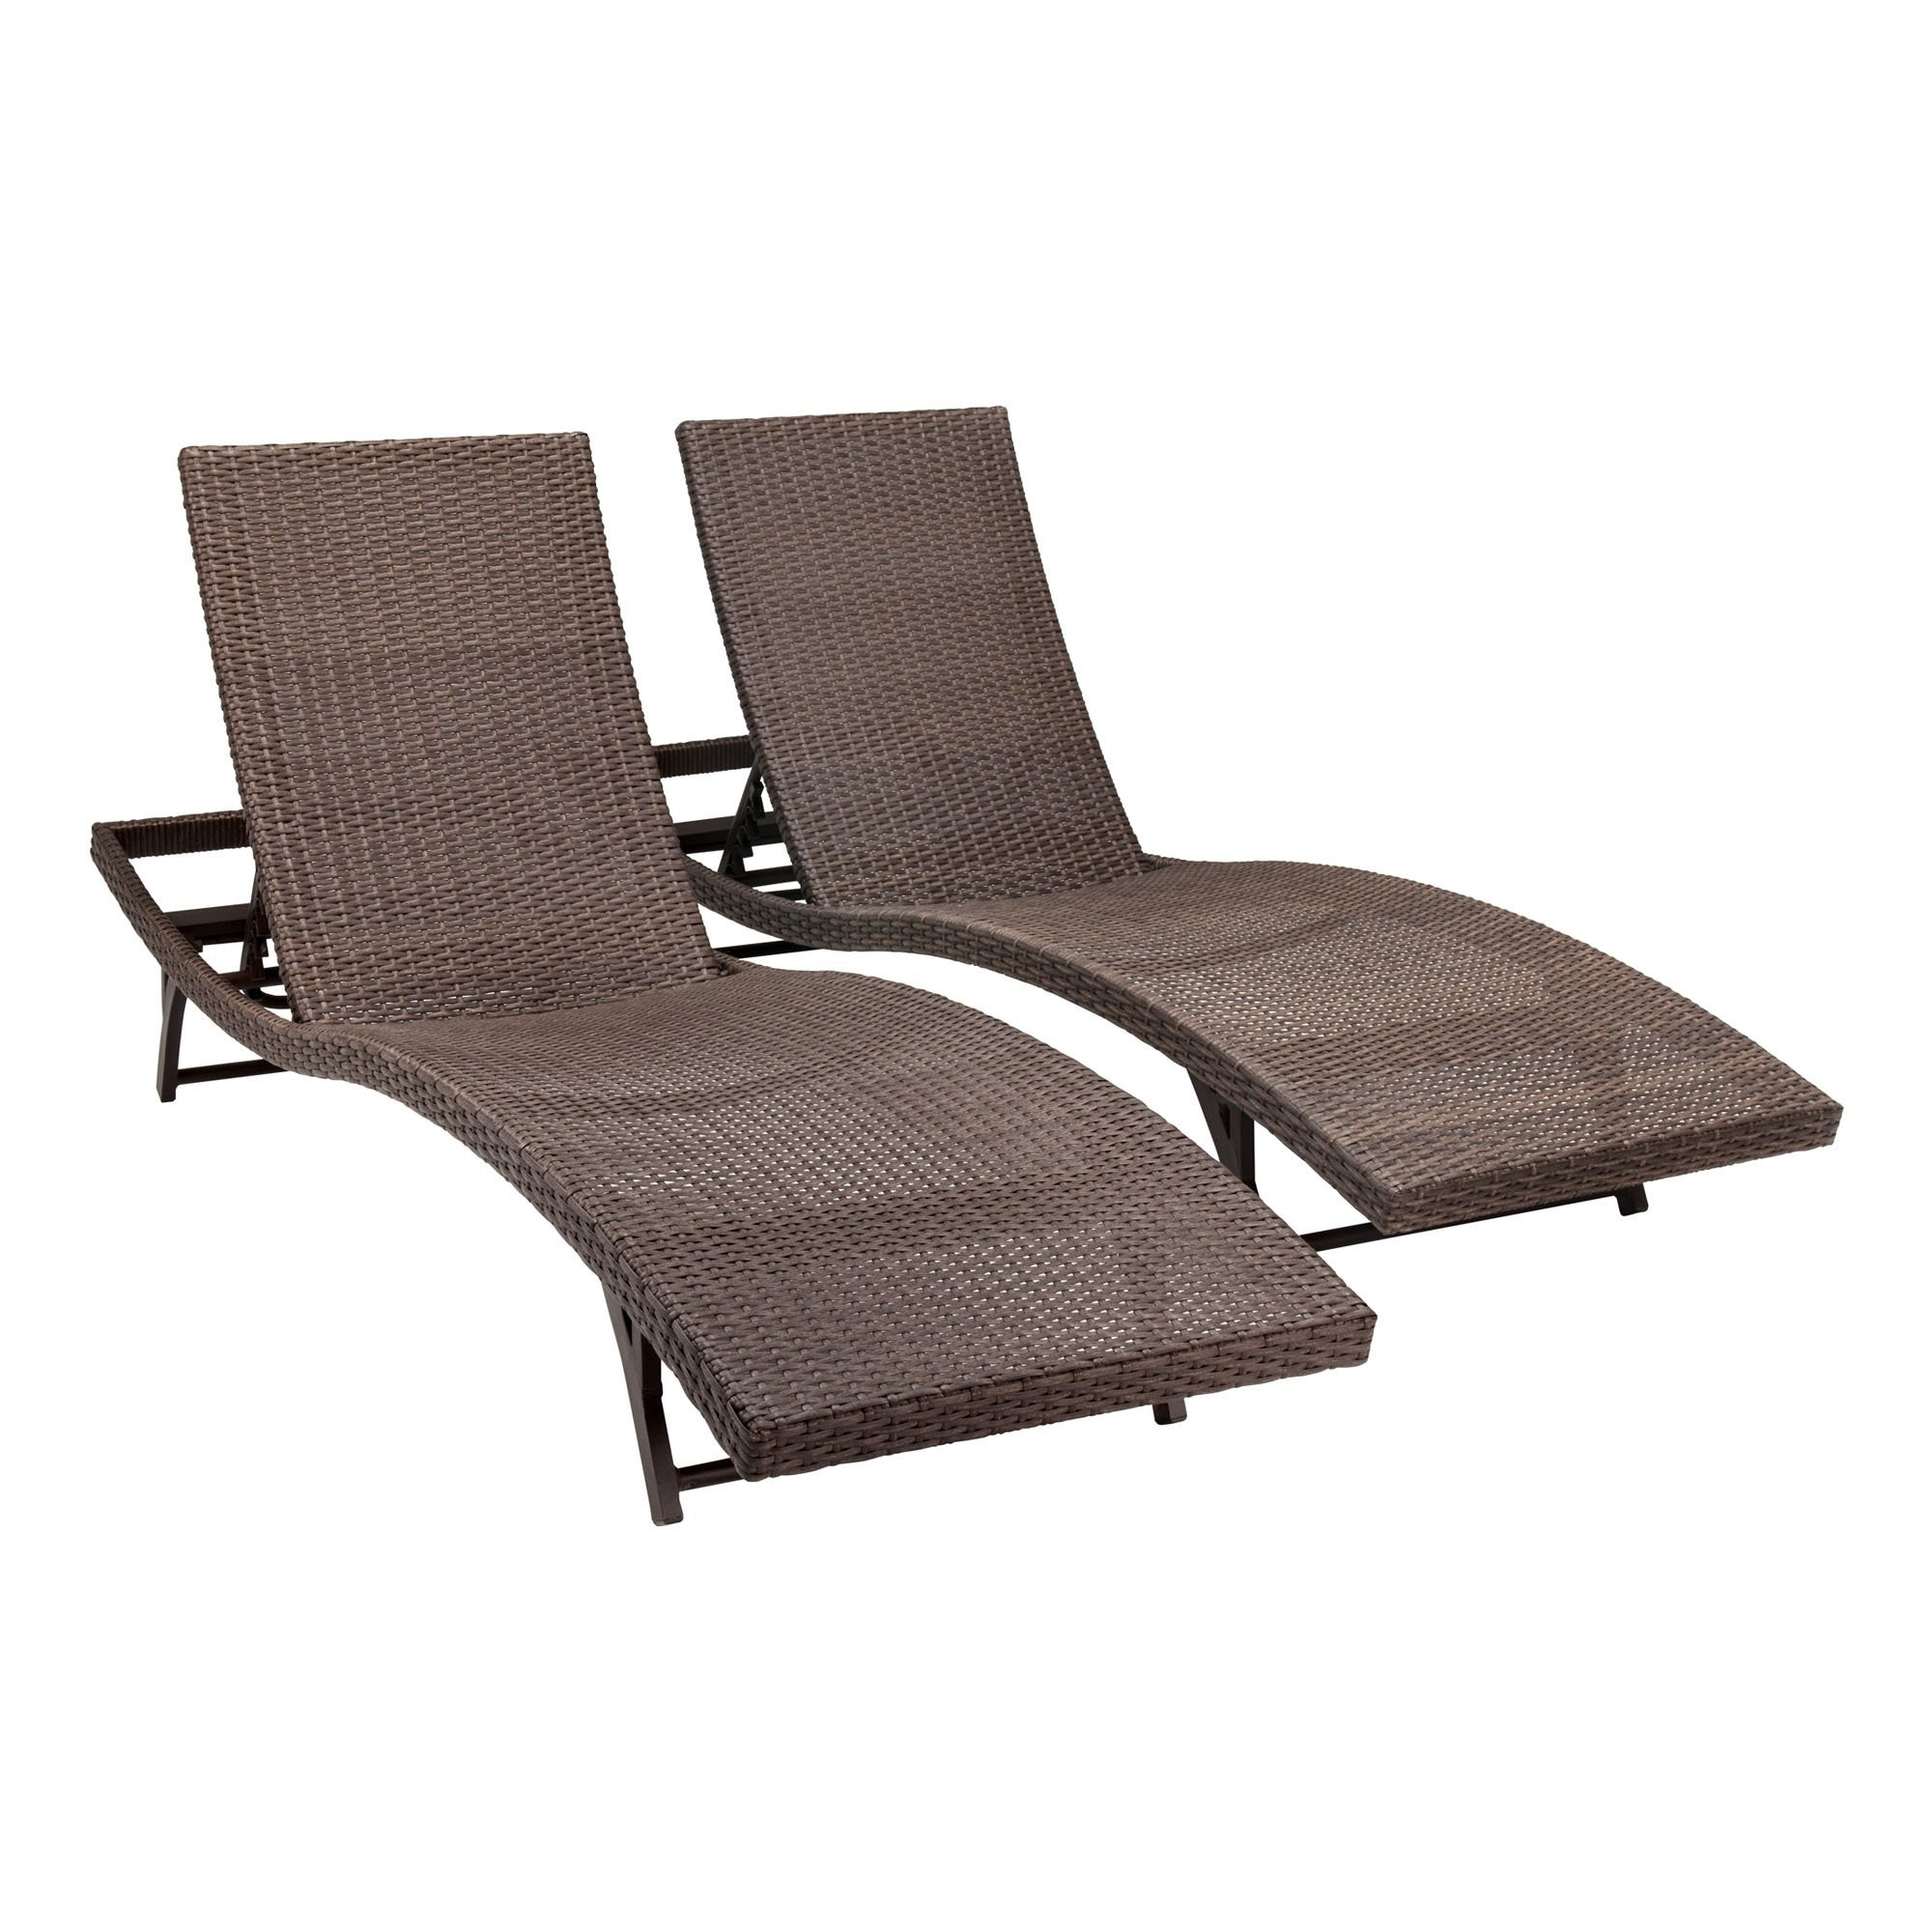 Current Outdoor : Cheap Lounge Chairs Vinyl Strap Chaise Lounge Home Depot Pertaining To Vinyl Chaise Lounge Chairs (View 1 of 15)